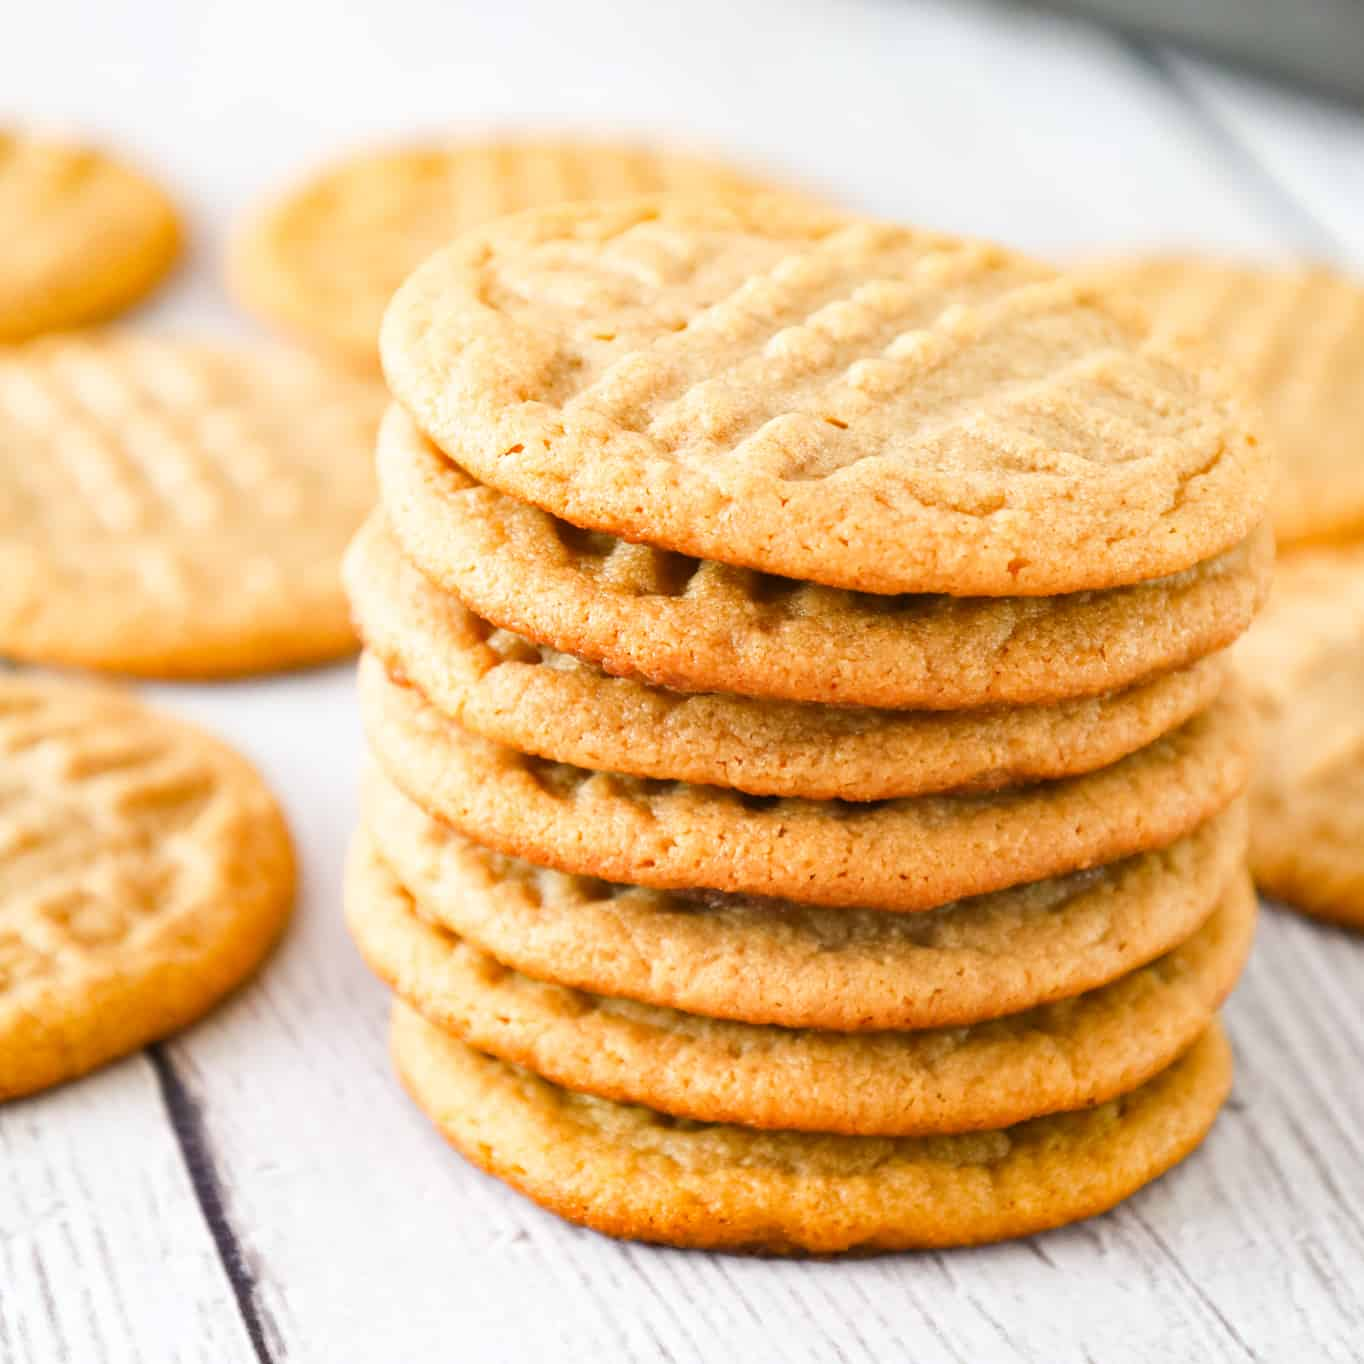 3 Ingredient Peanut Butter Cookies are chewy and delicious peanut butter cookies made using just peanut butter, brown sugar and an egg.